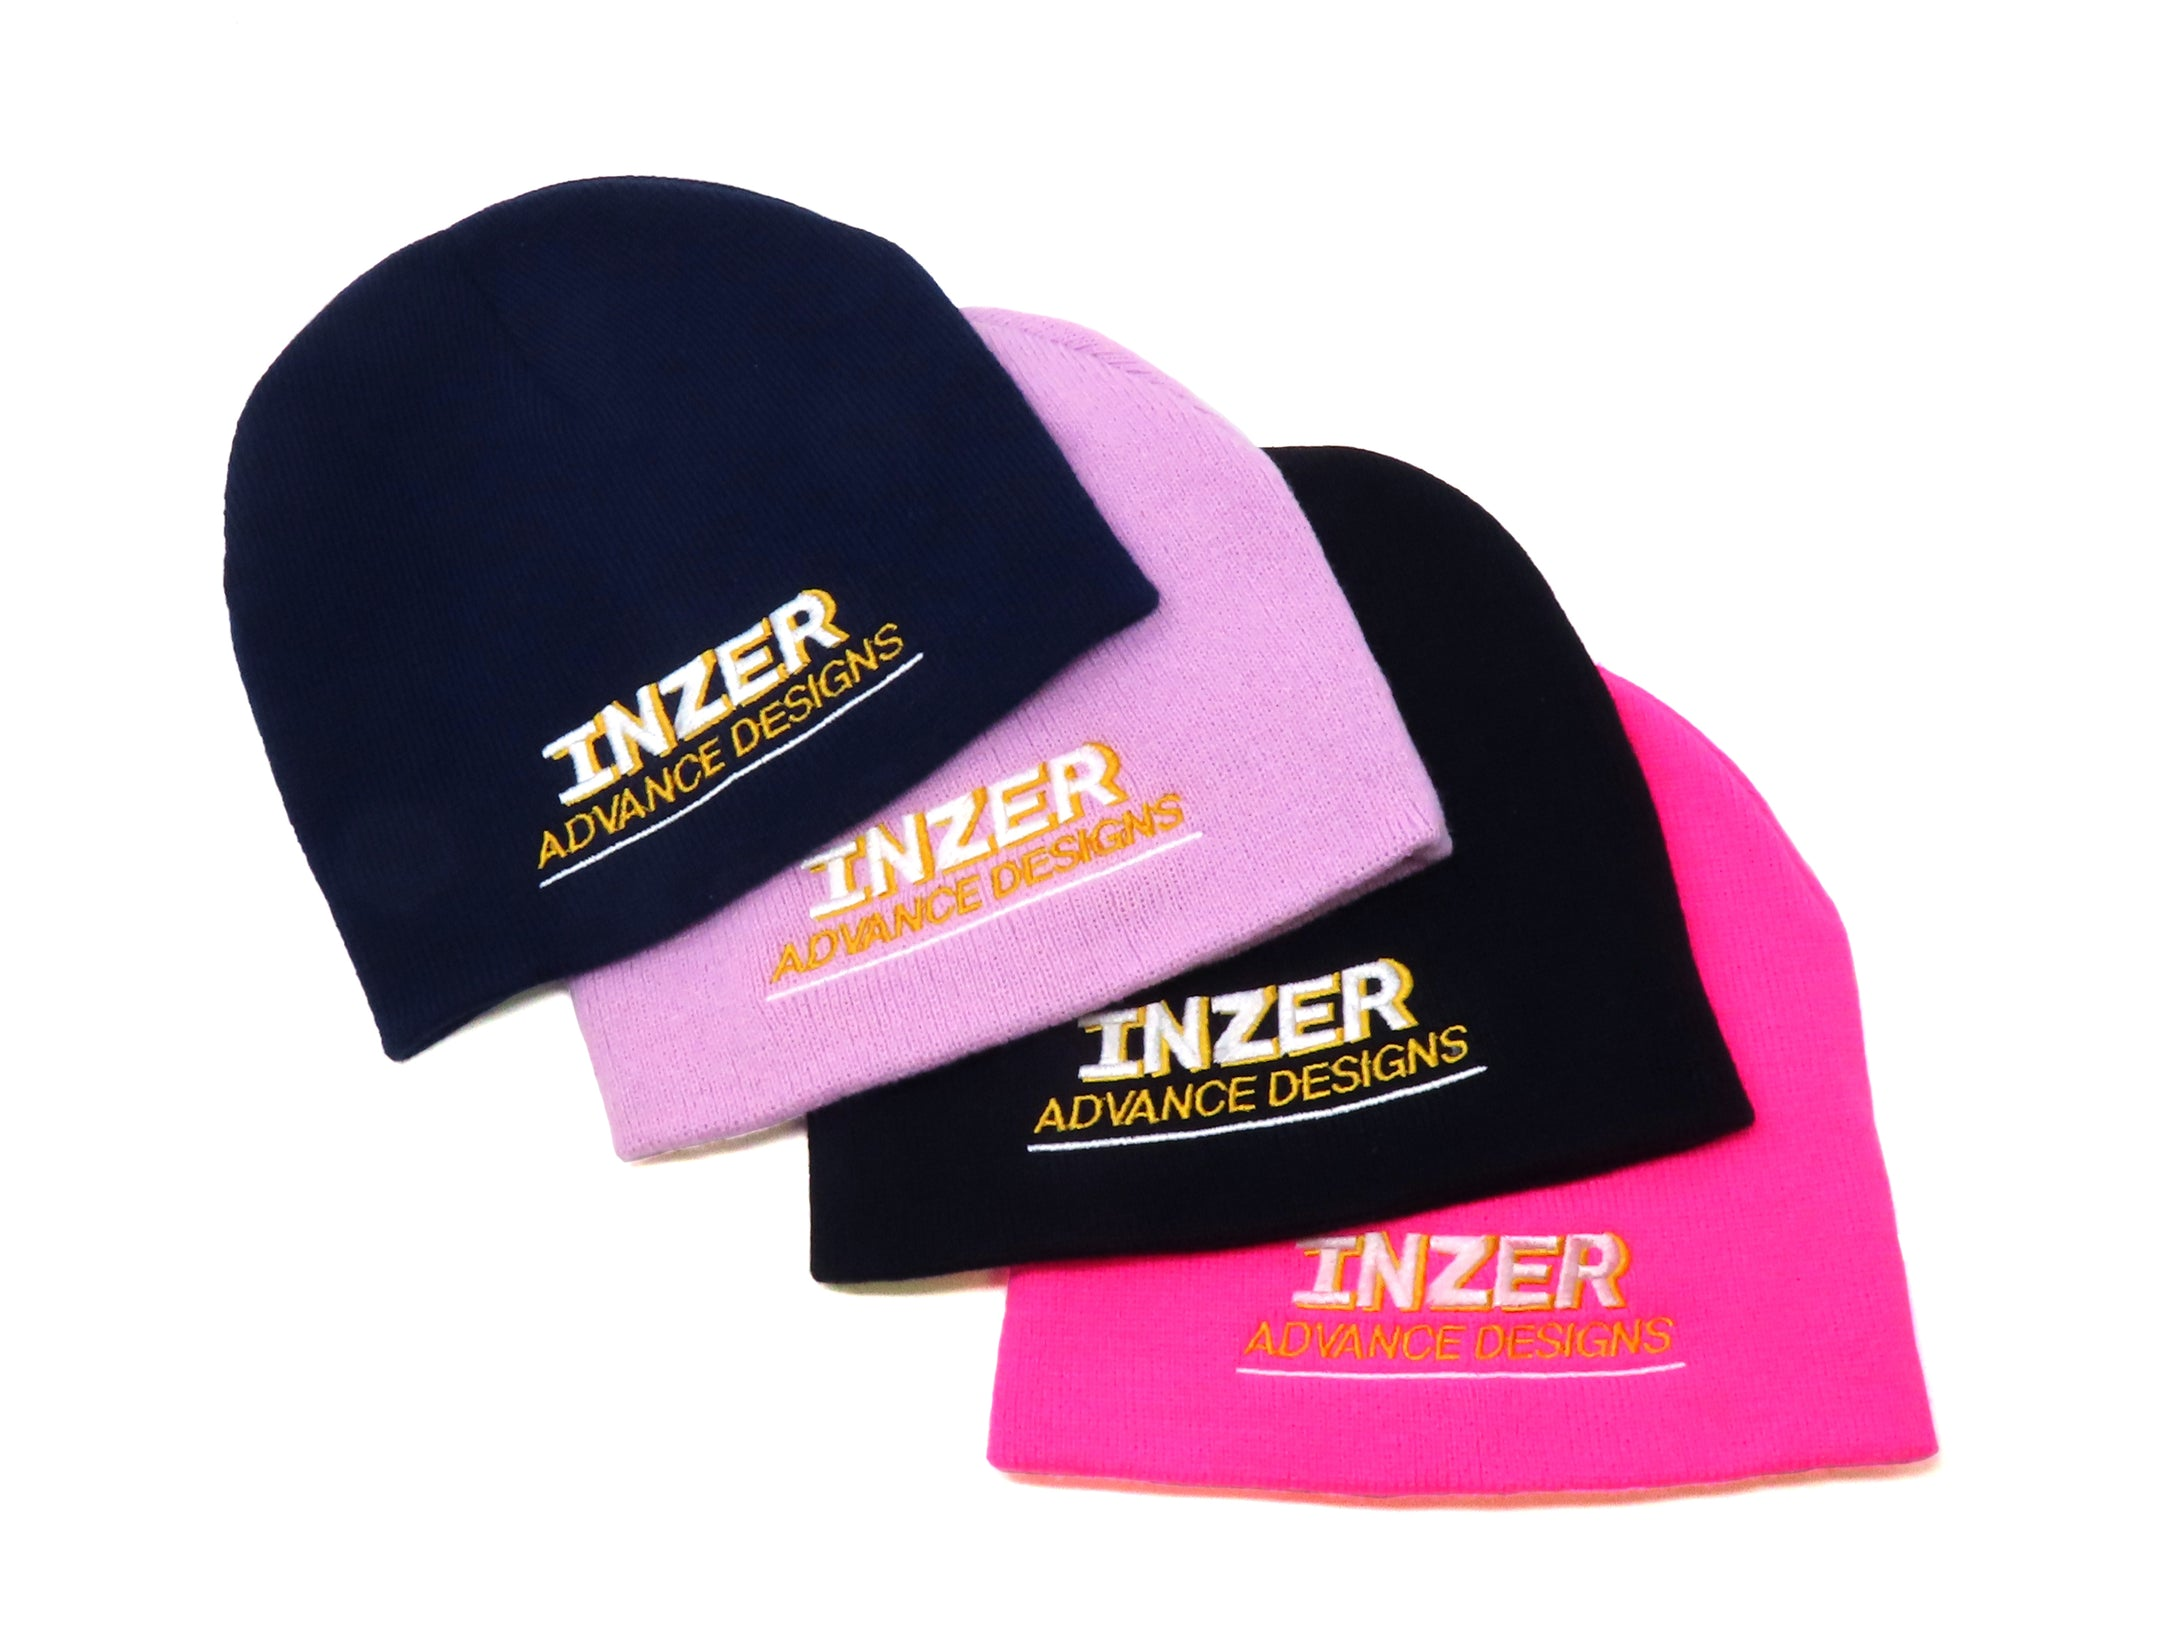 Inzer beanie hat. Inzer Powerlifting Belts, Inzer Advance Designs The World Leader in Powerlifting Apparel